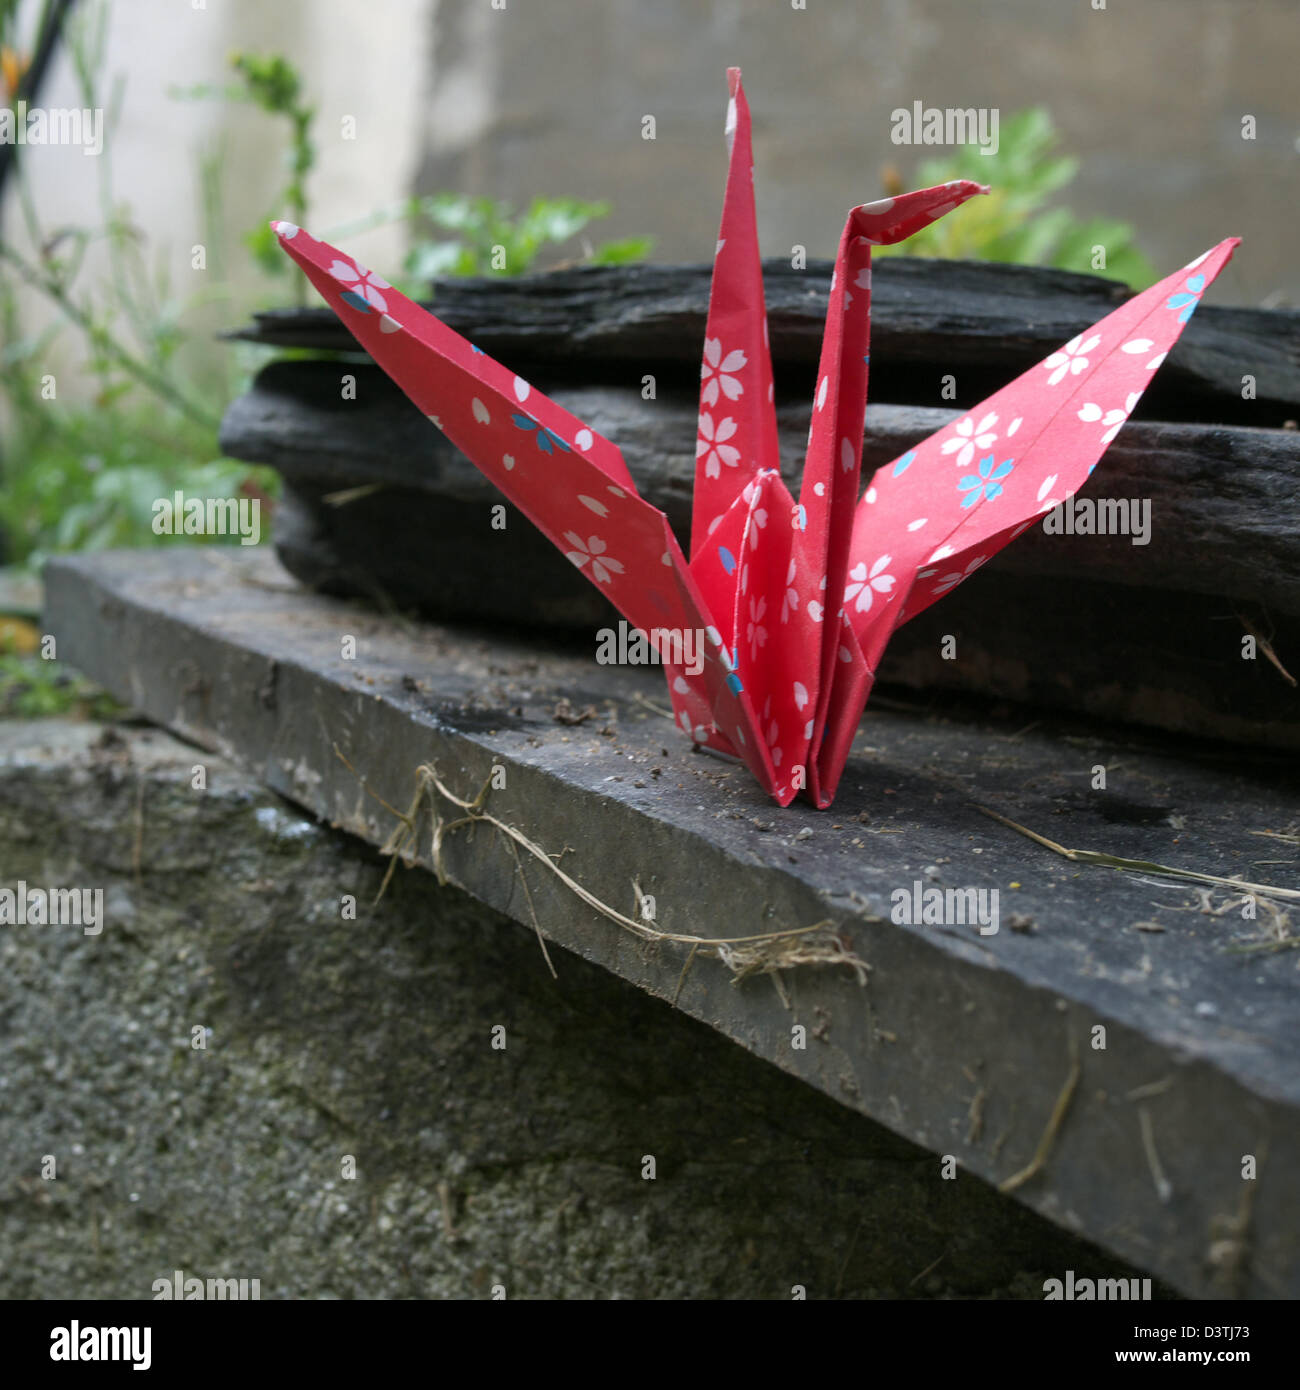 Red paper crane placed outdoors on a slab of slate - Stock Image